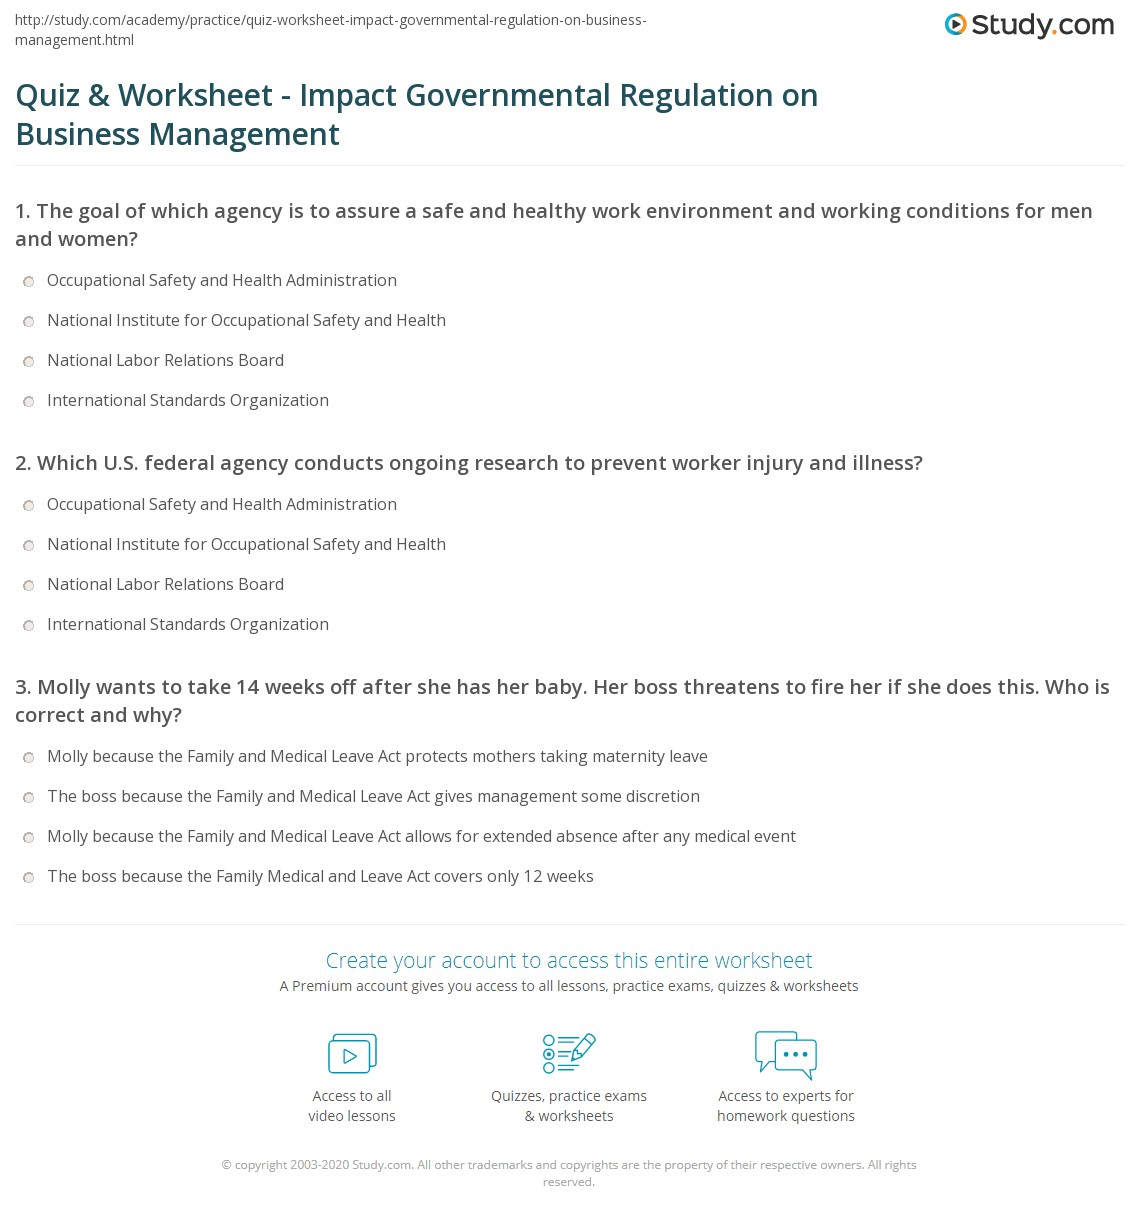 Quiz & Worksheet Impact Governmental Regulation on Business